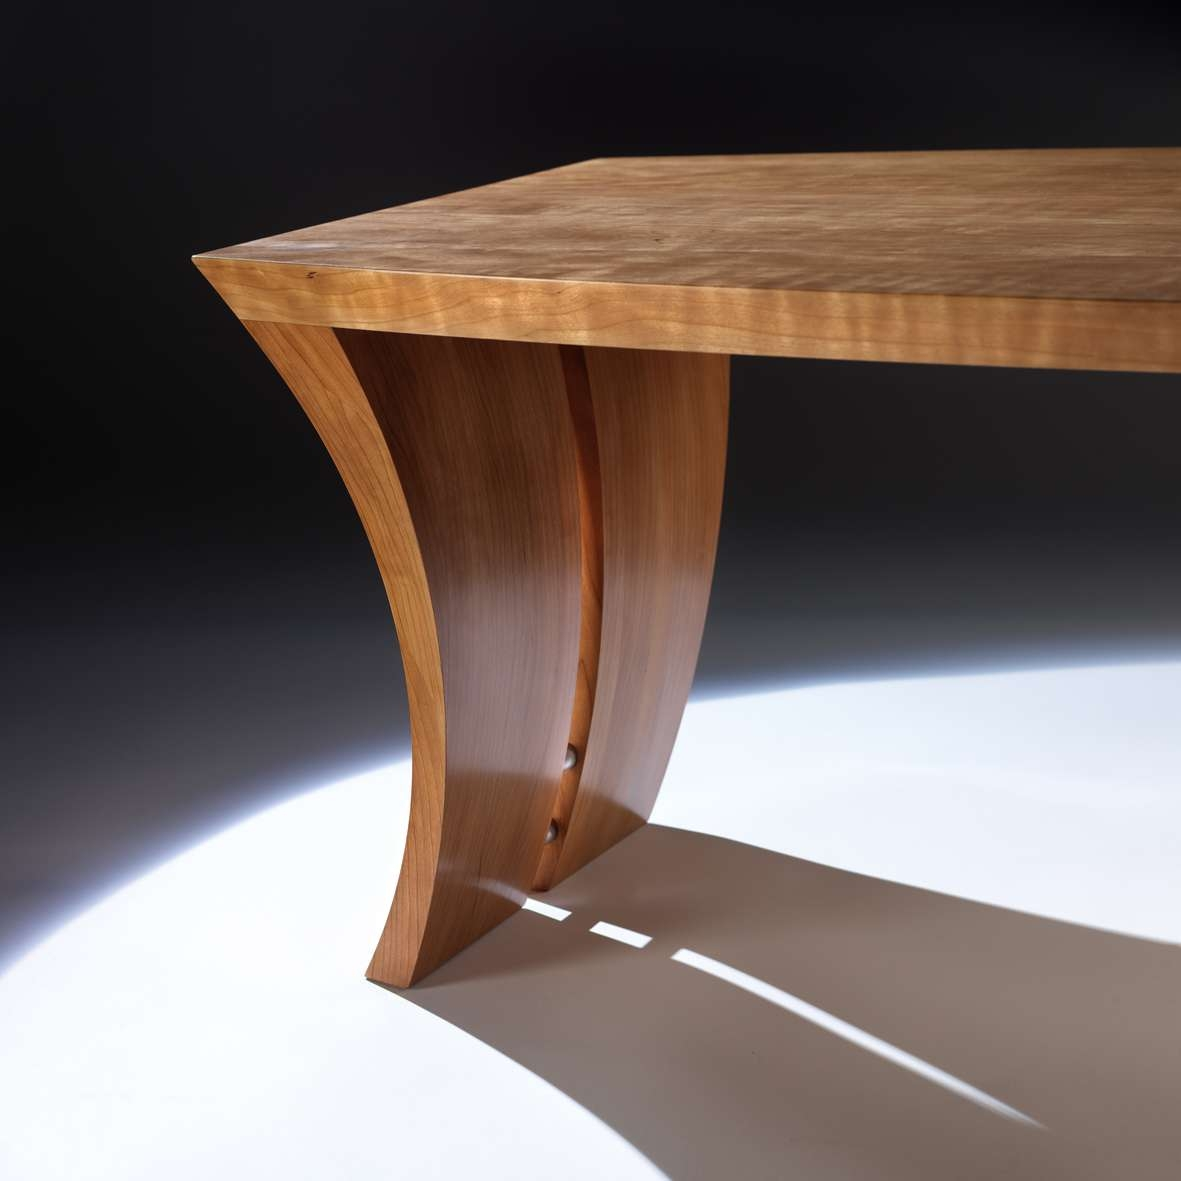 Fashionable Bespoke Coffee Tables With Regard To Contemporary Bespoke Coffee Table (View 5 of 20)